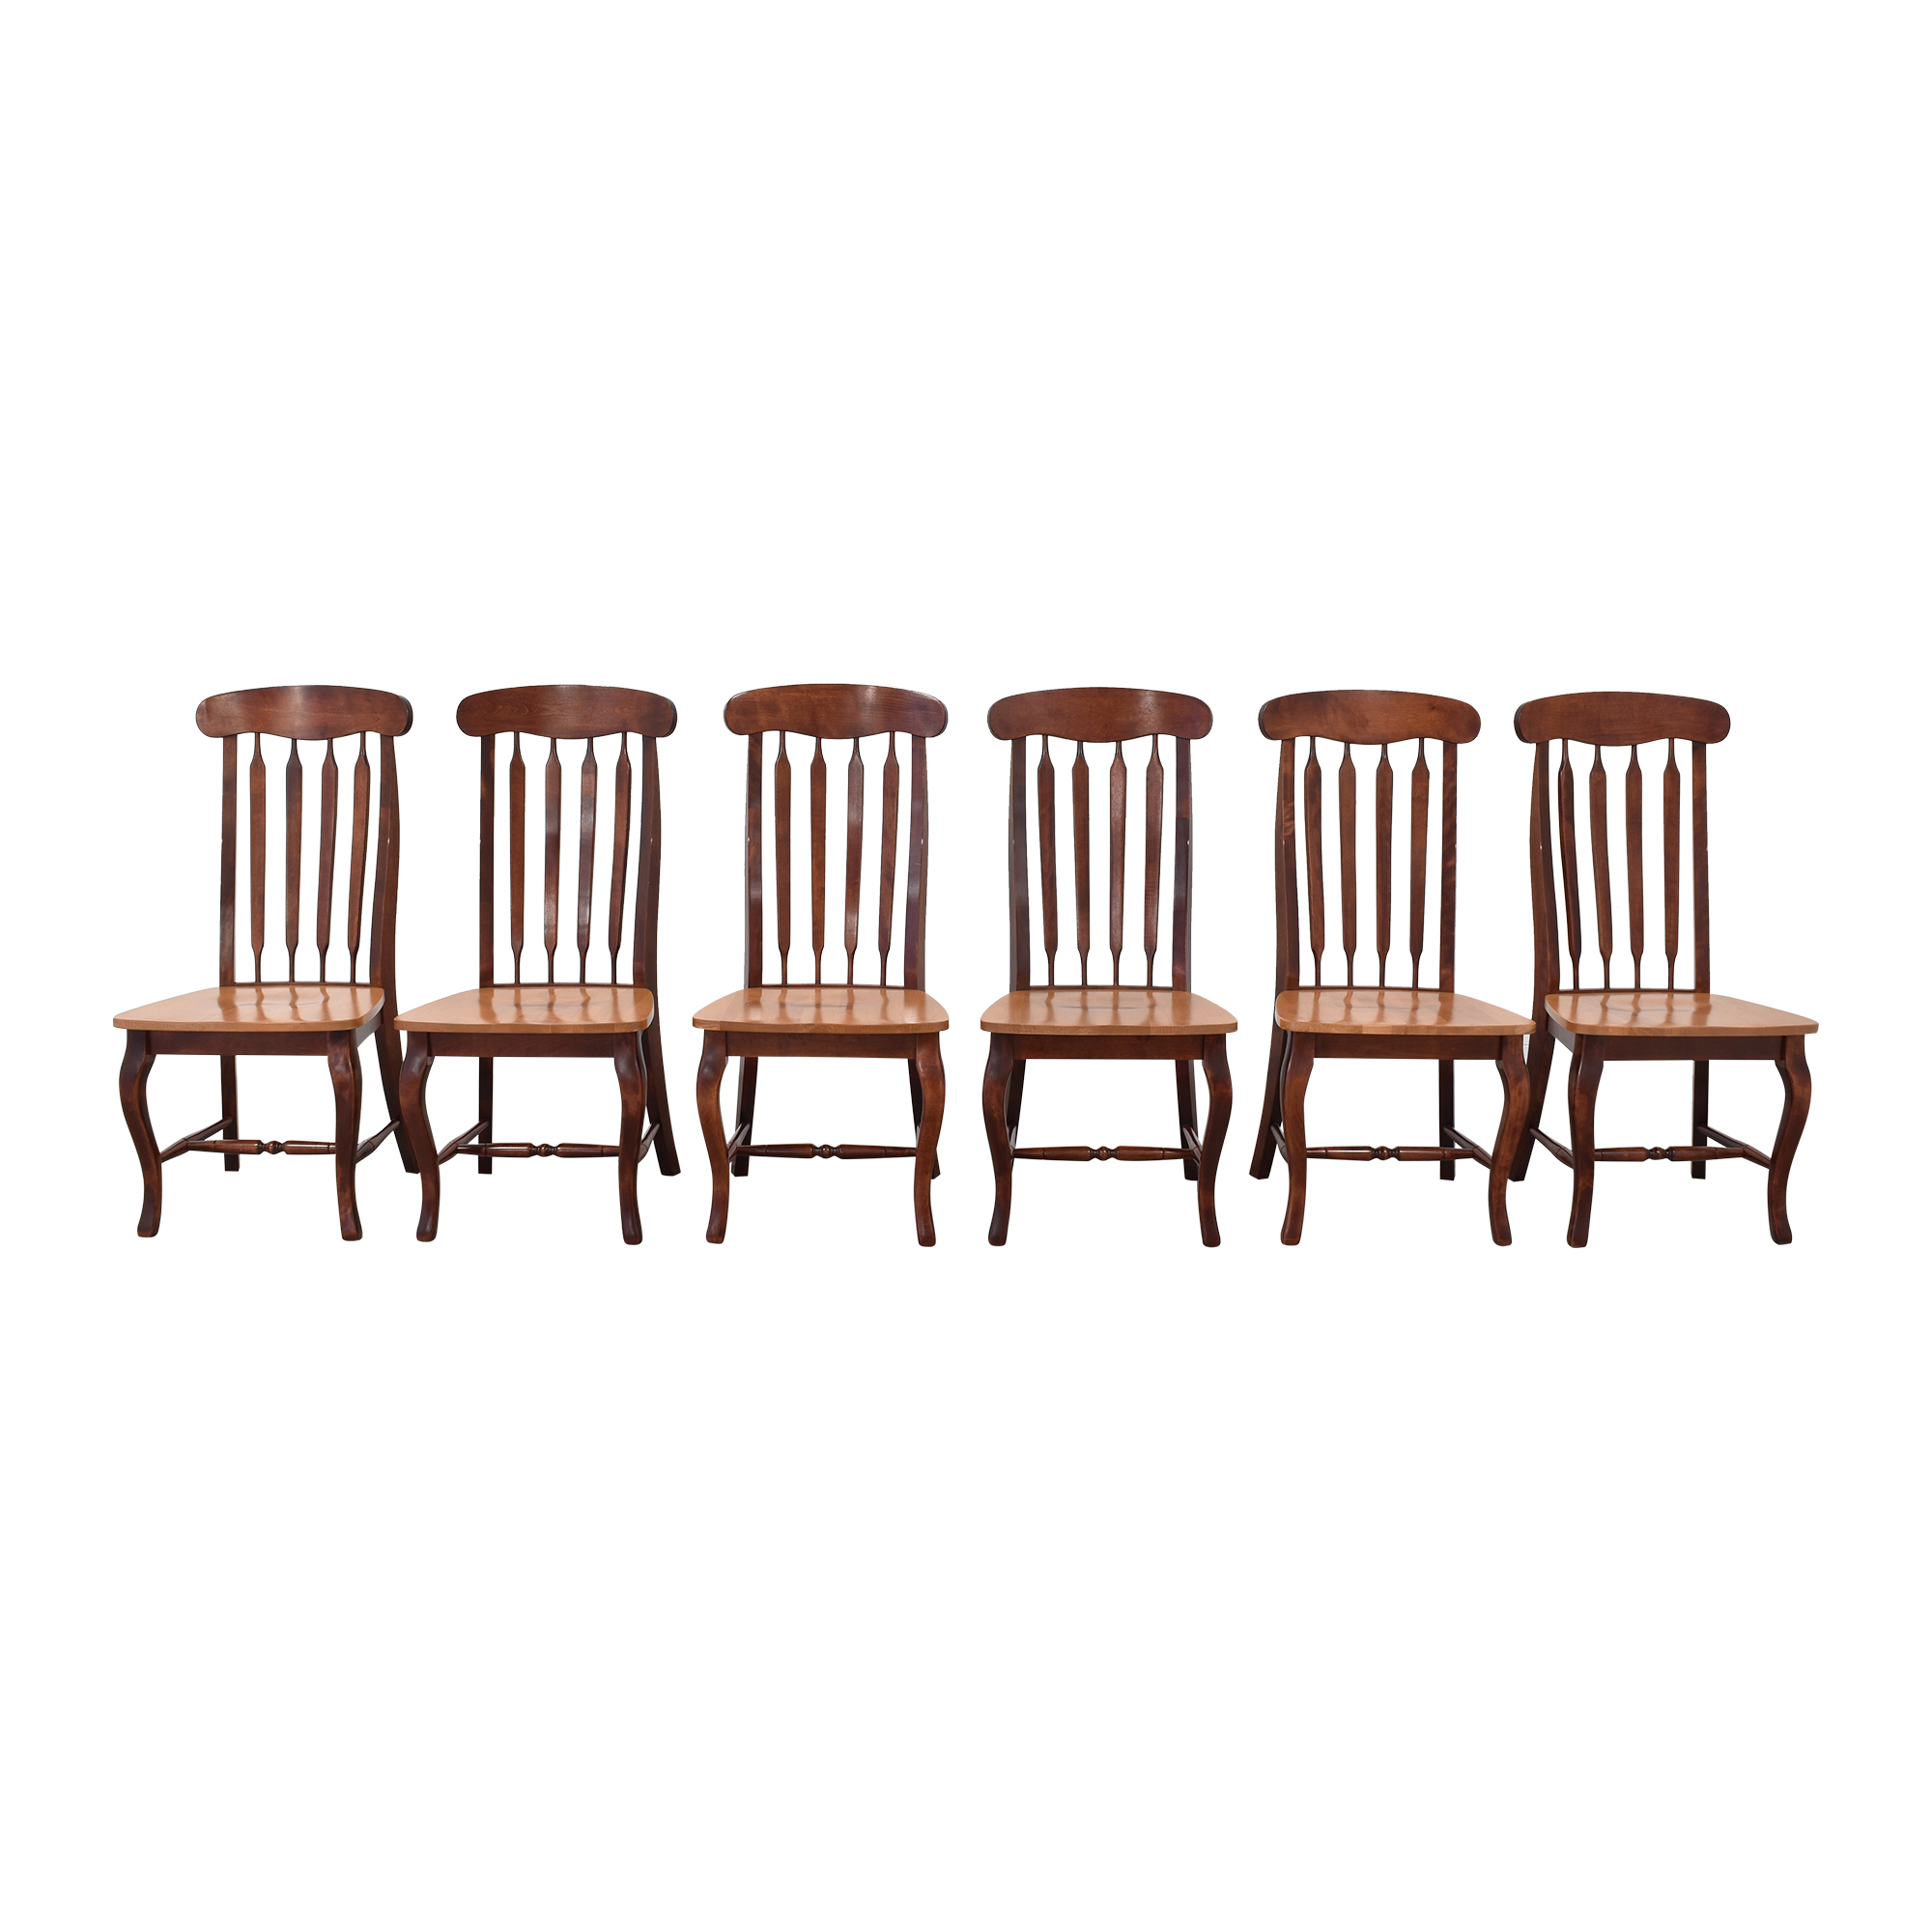 Canadel Canadel Slat Back Dining Chairs used